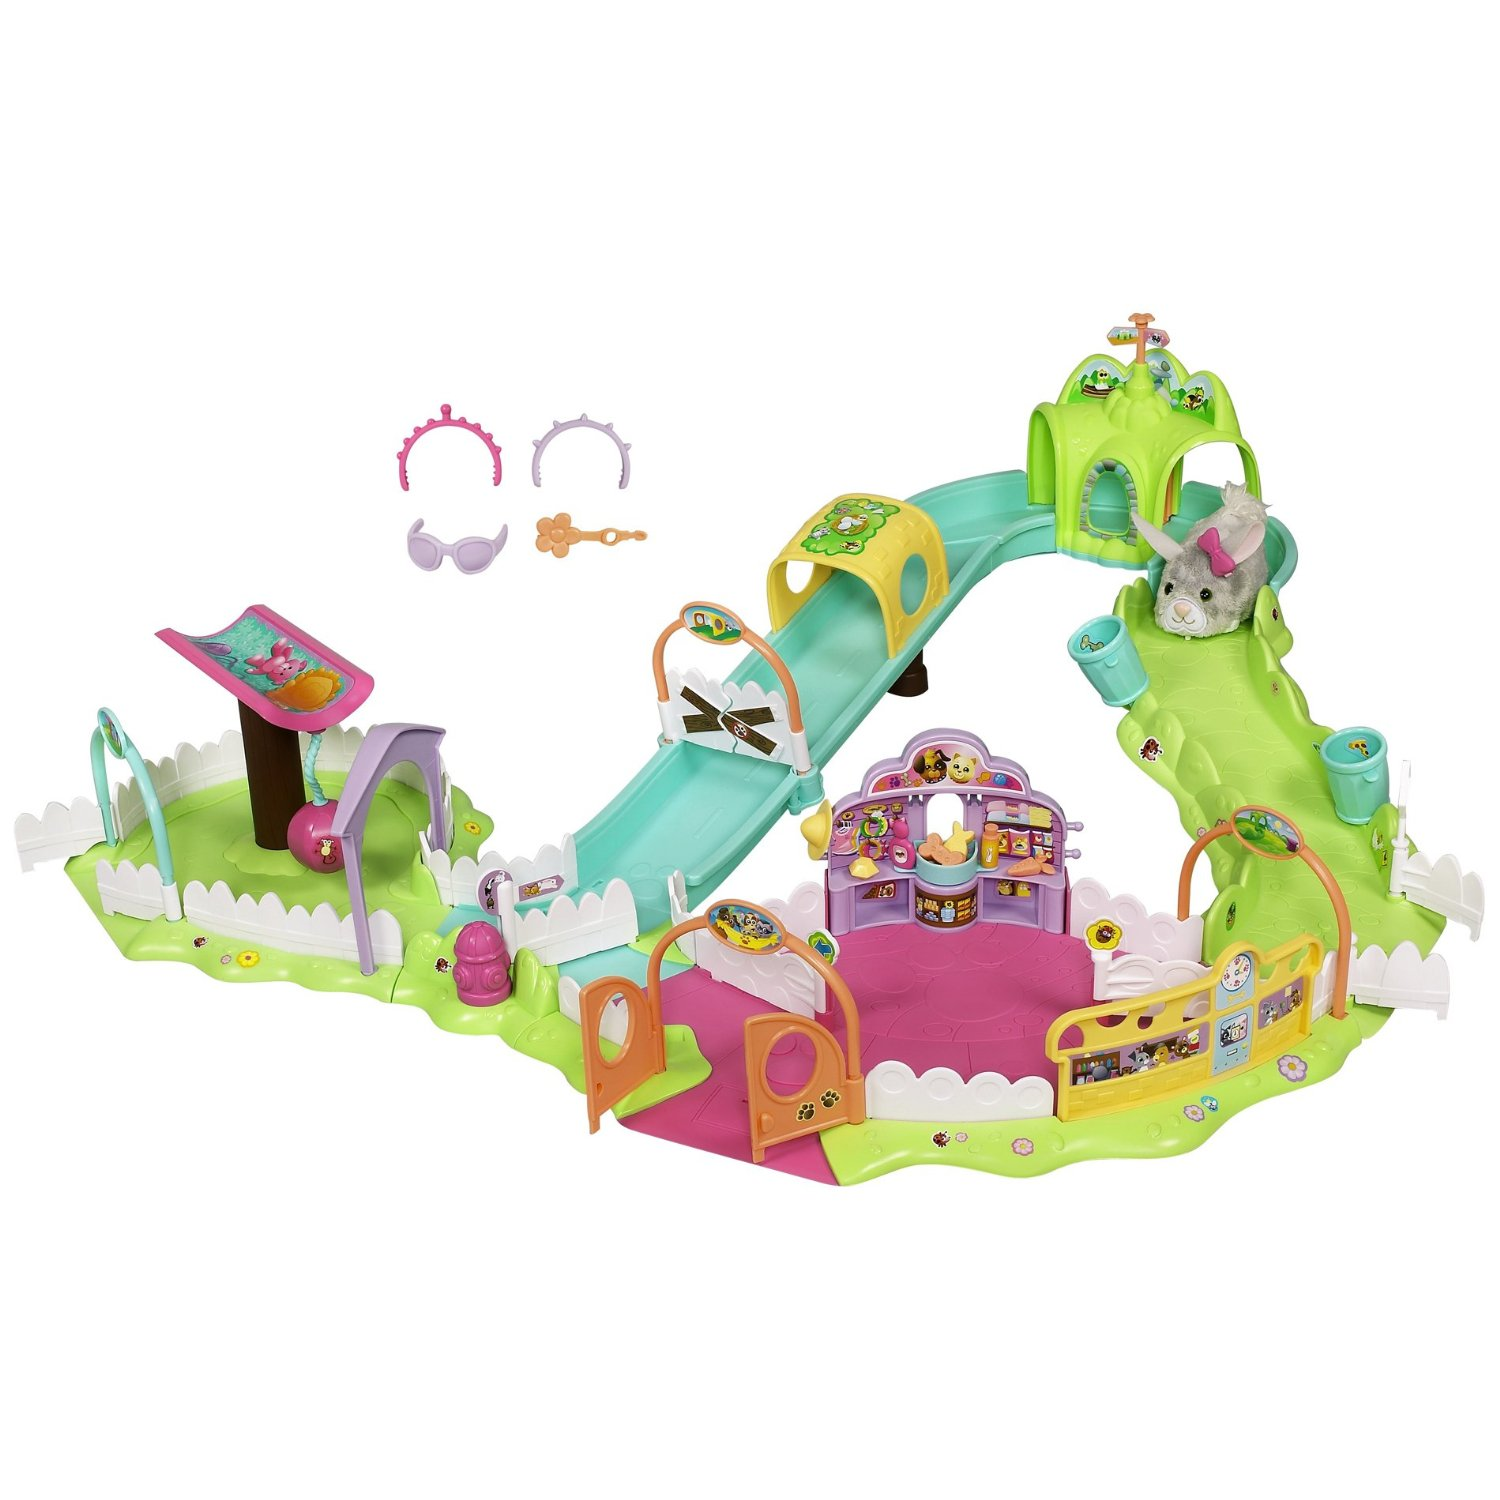 FurReal Friends Furry Frenzies City Center Play Set - Amazon Toy Deal